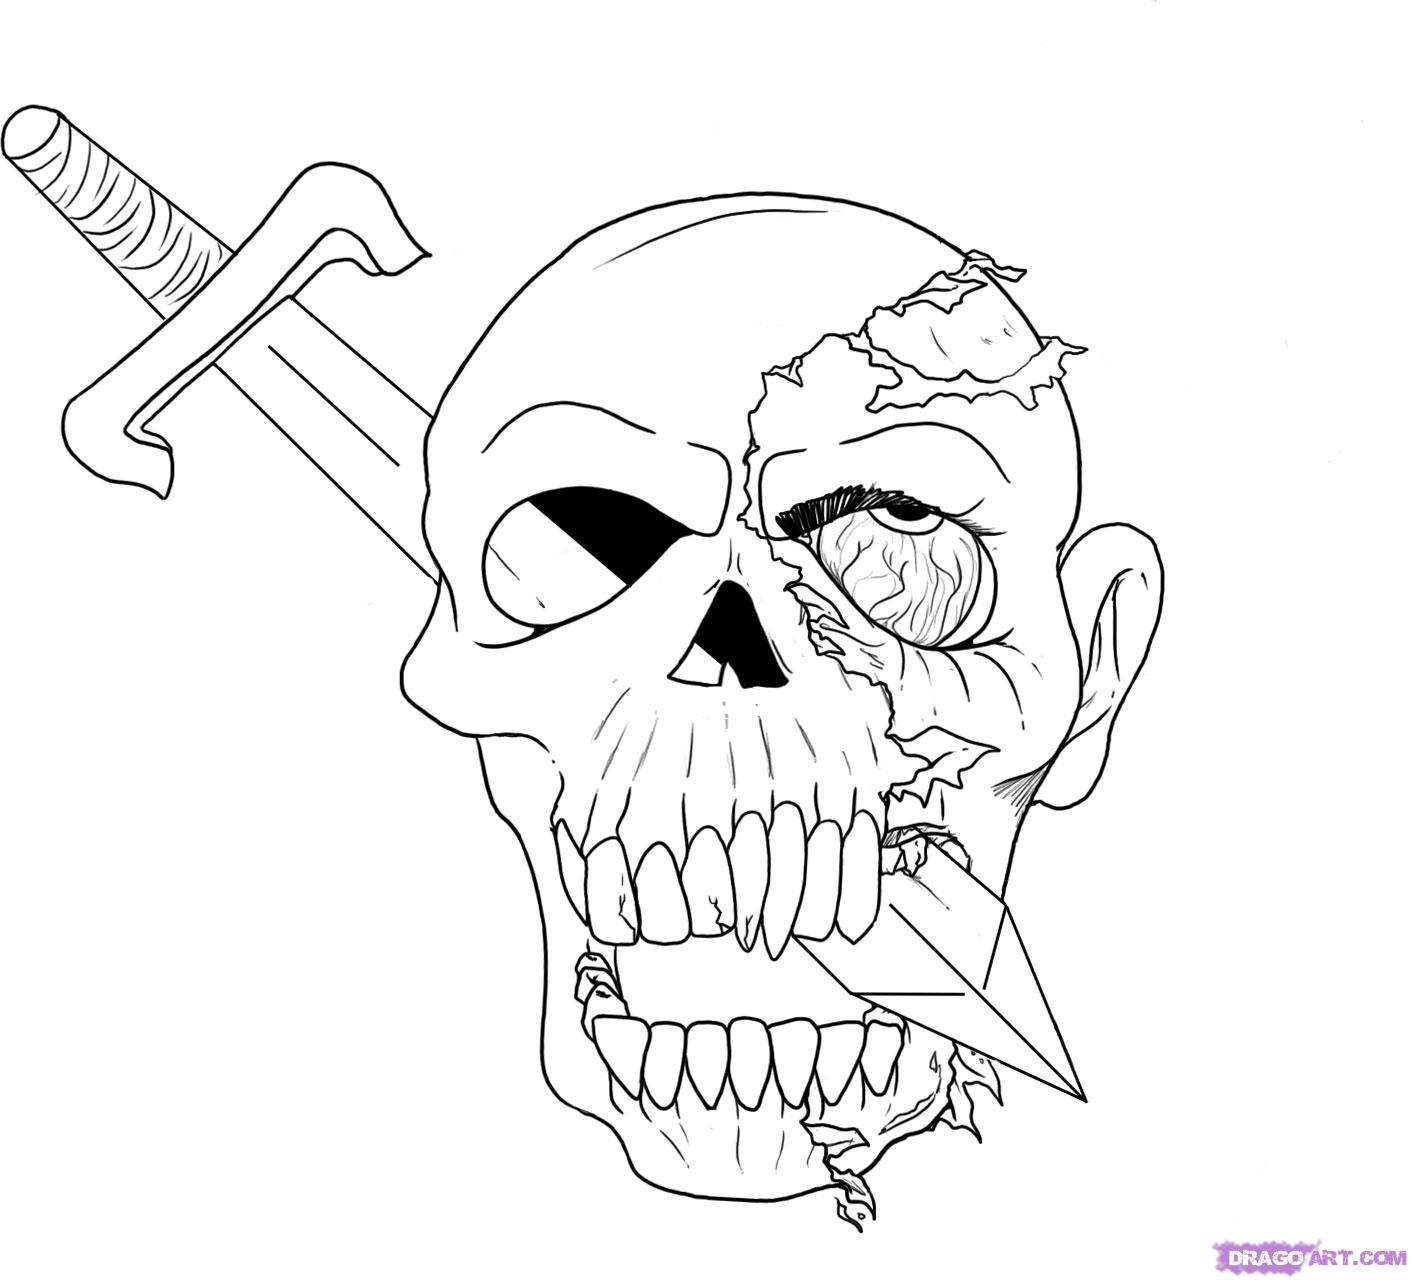 Drawings Easy Skull With Guns: Skull And Roses Drawing At GetDrawings